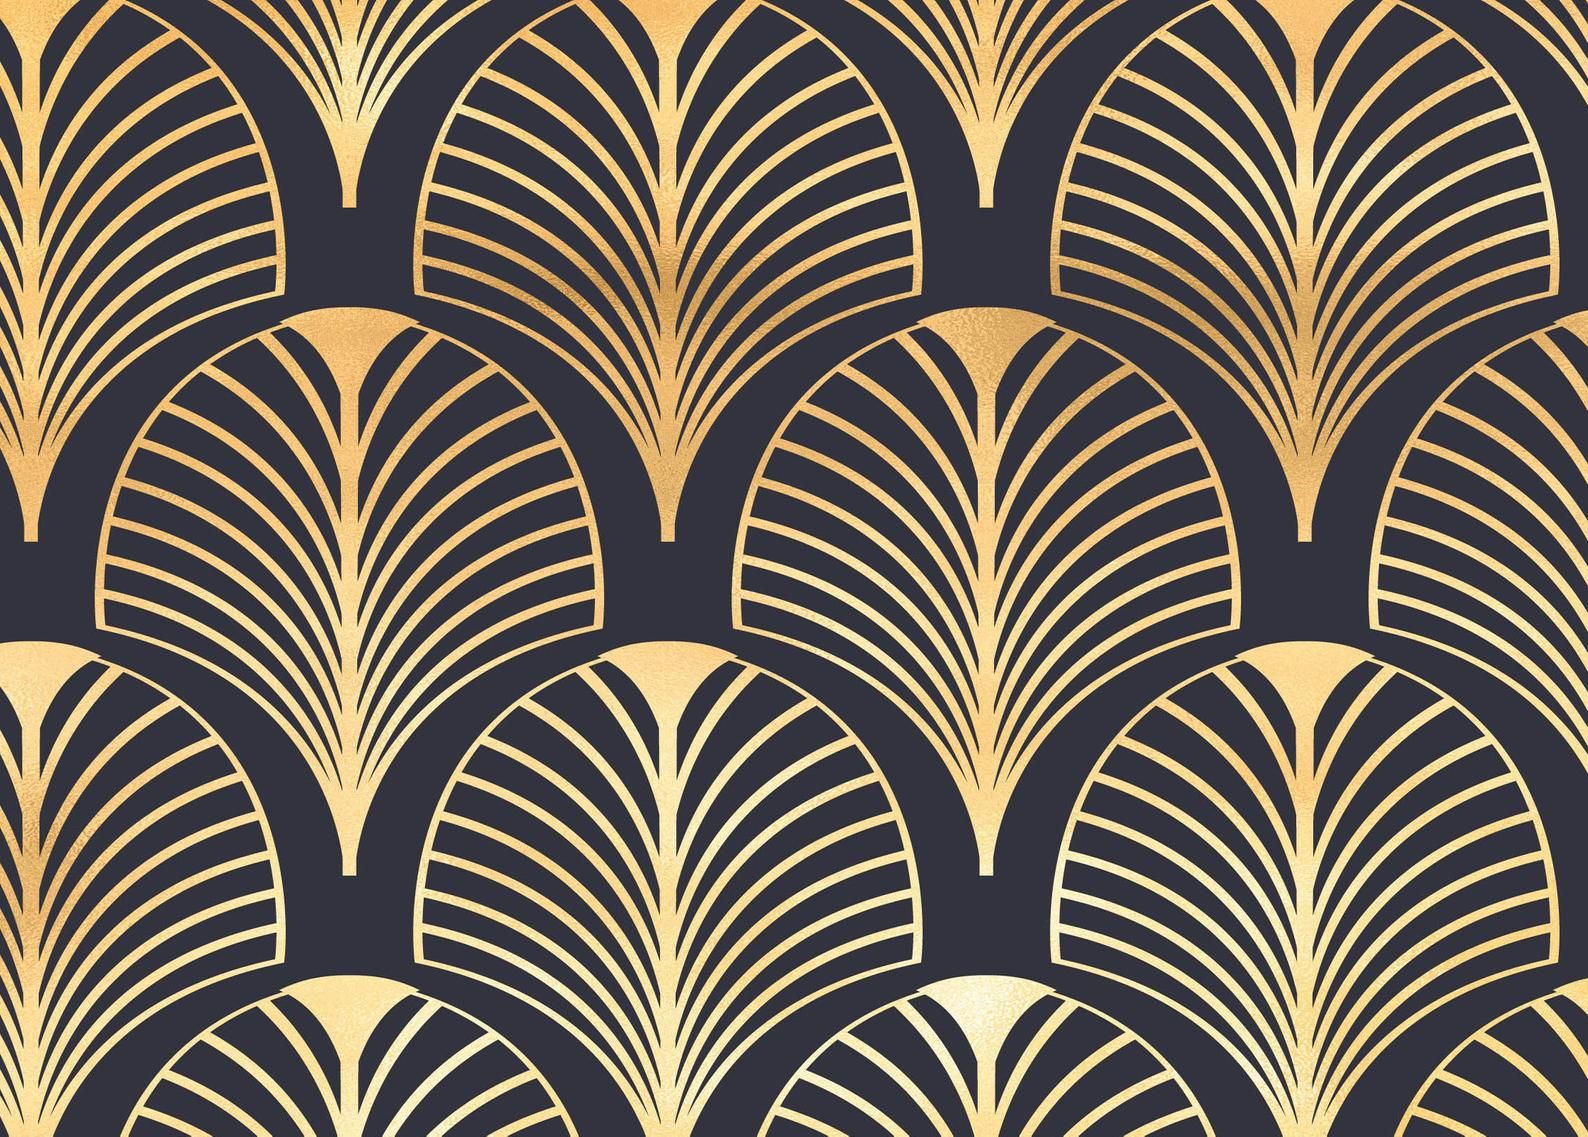 How to Choose the Right Art Deco, Vintage, or Self-Adorning Wallpaper Design